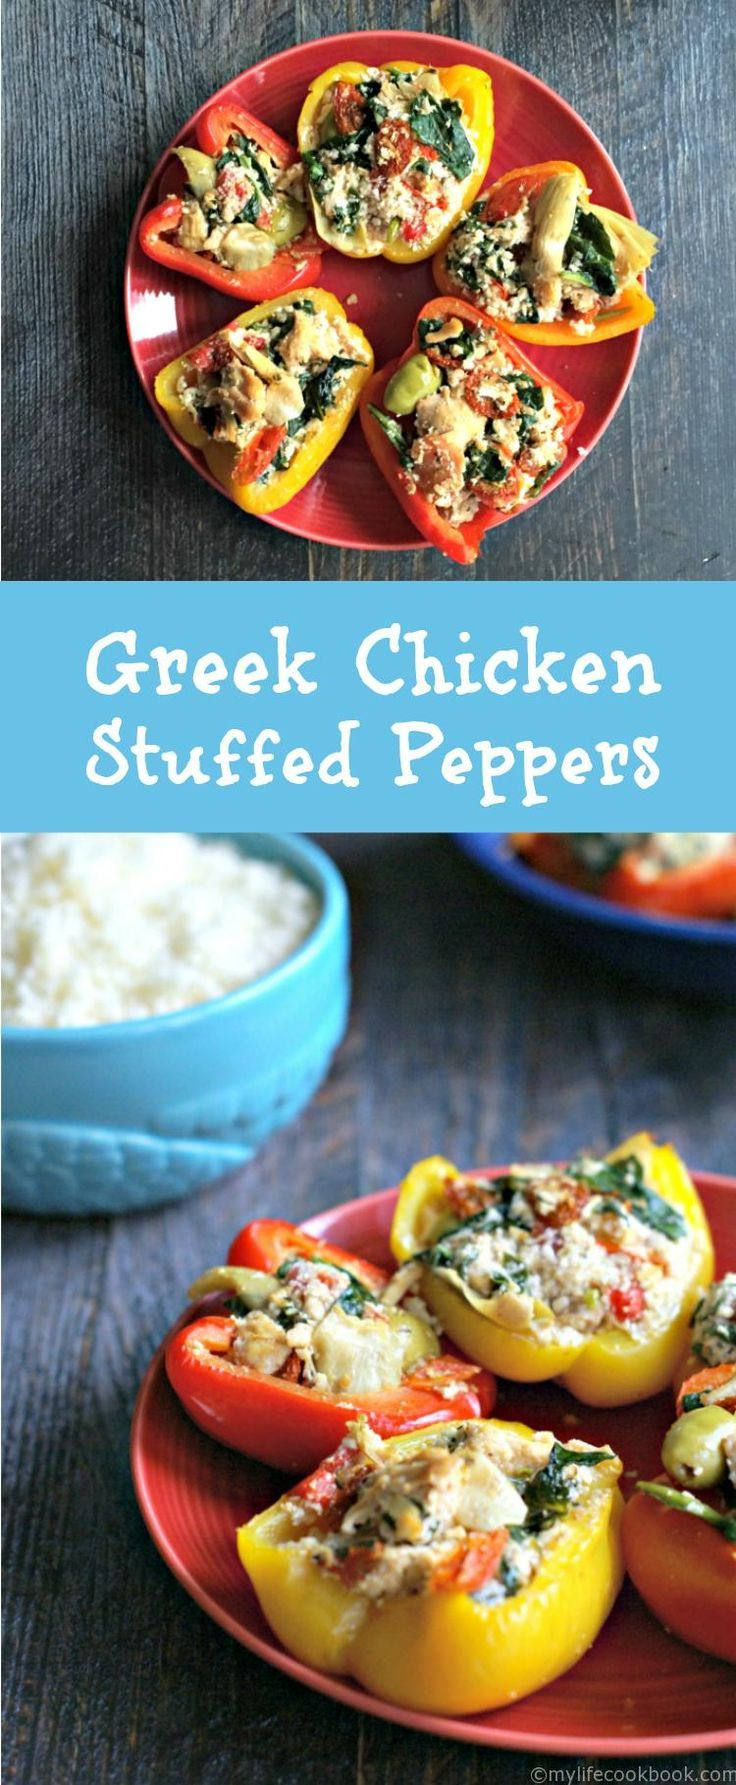 These Greek chicken stuffed peppers are an easy yet delicious meal that is low carb and Paleo too. A healthy meal under 30 minutes!